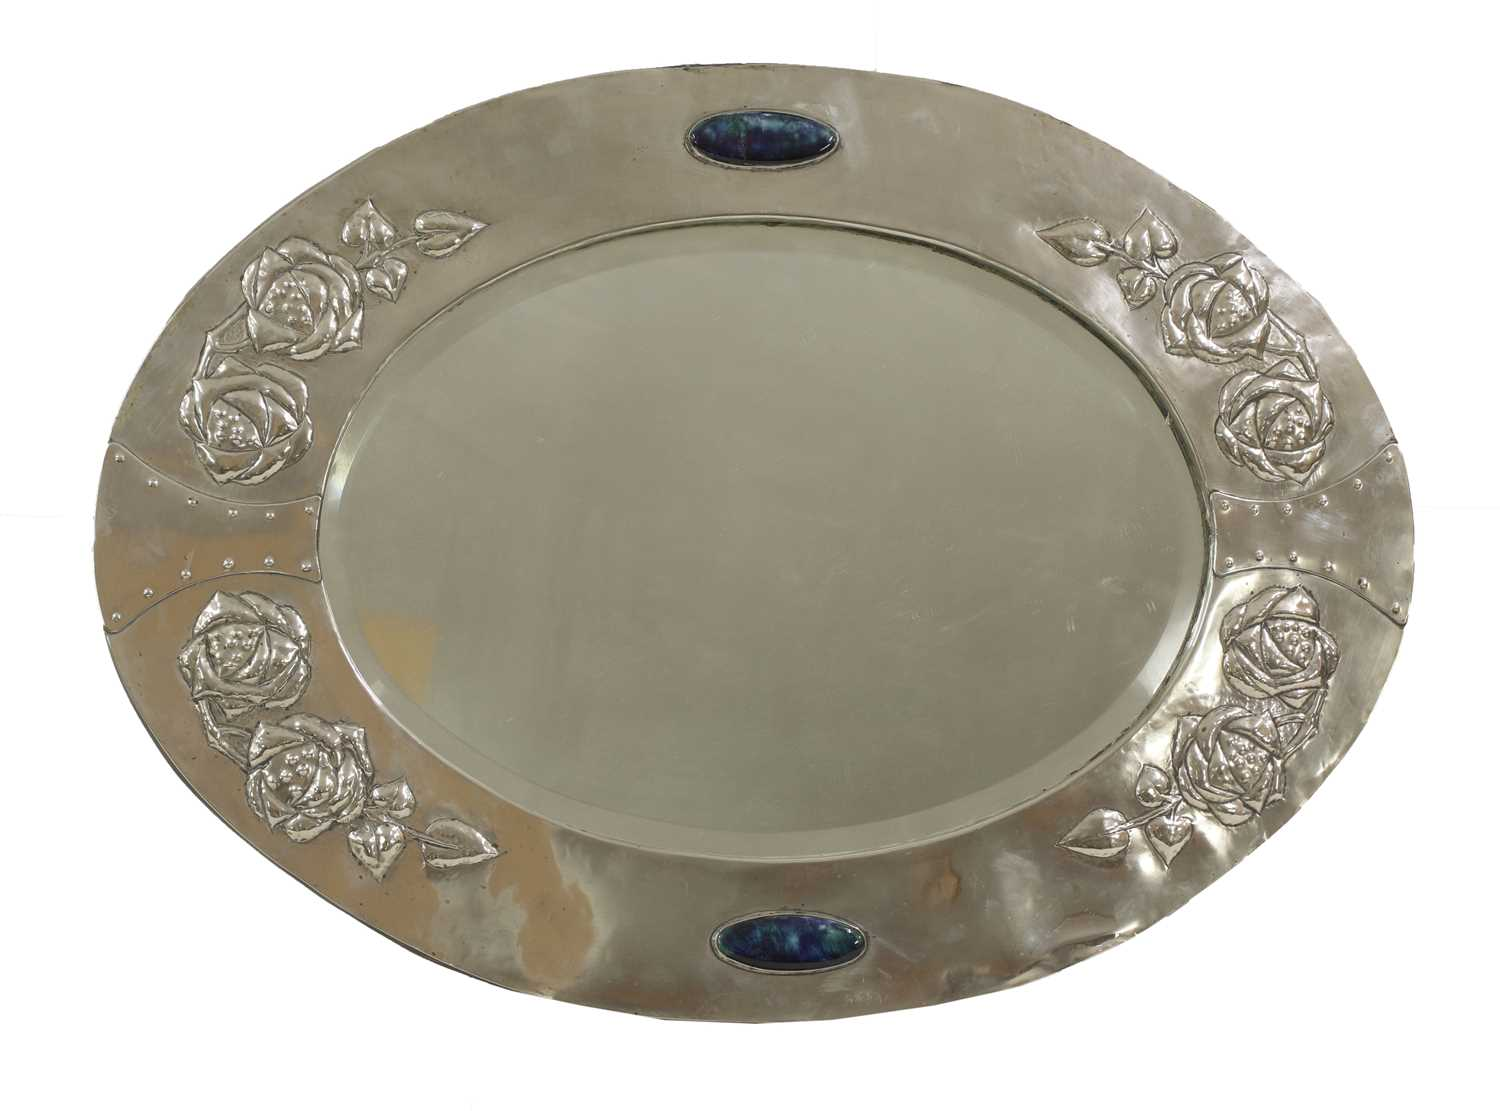 Lot 82 - An Arts and Crafts silver-plated oval wall mirror